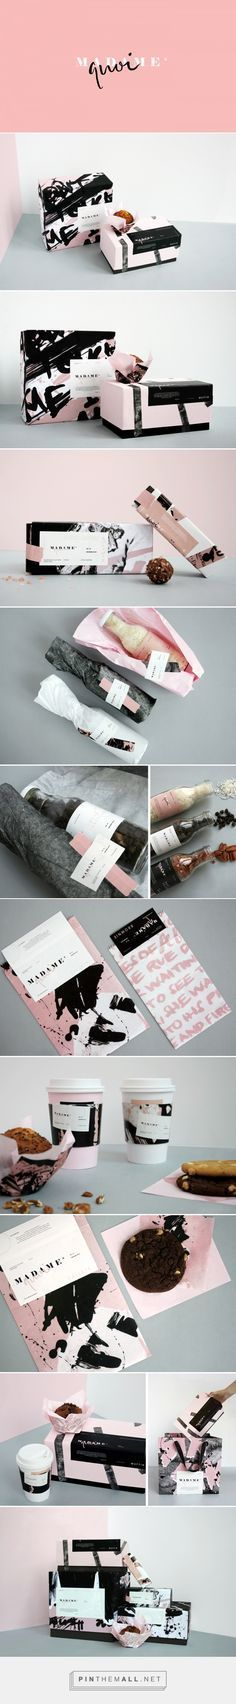 Madame Quoi / Branding and packaging for a gourmet bakery inspired by the dramatic french story of Henriette Callioux set in the year 1914 / by Cynthia Fernández, Sofia Villarreal